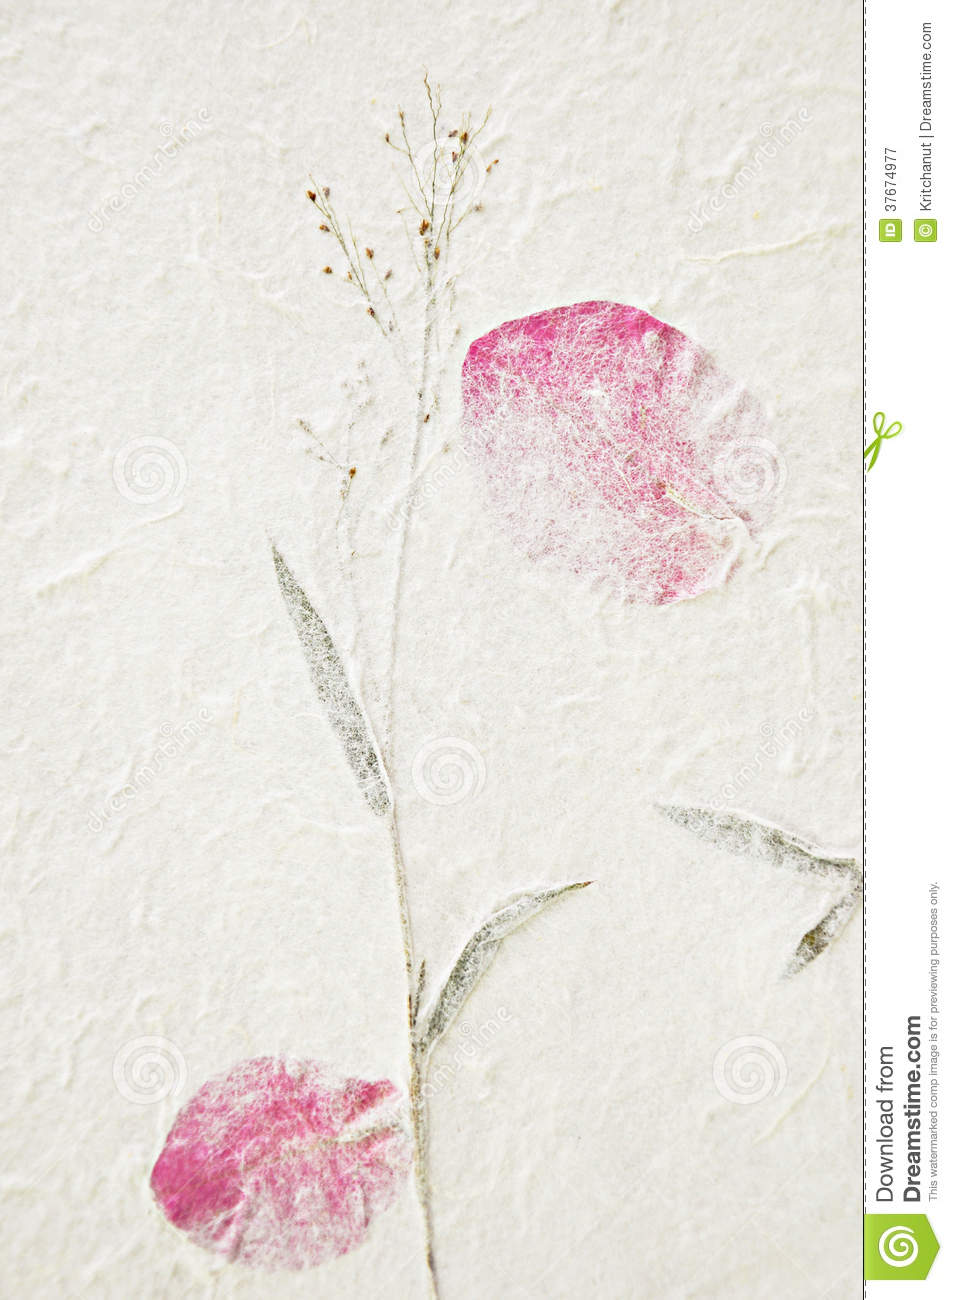 Mulberry Paper Texture With Dried Flower Stock Image ...